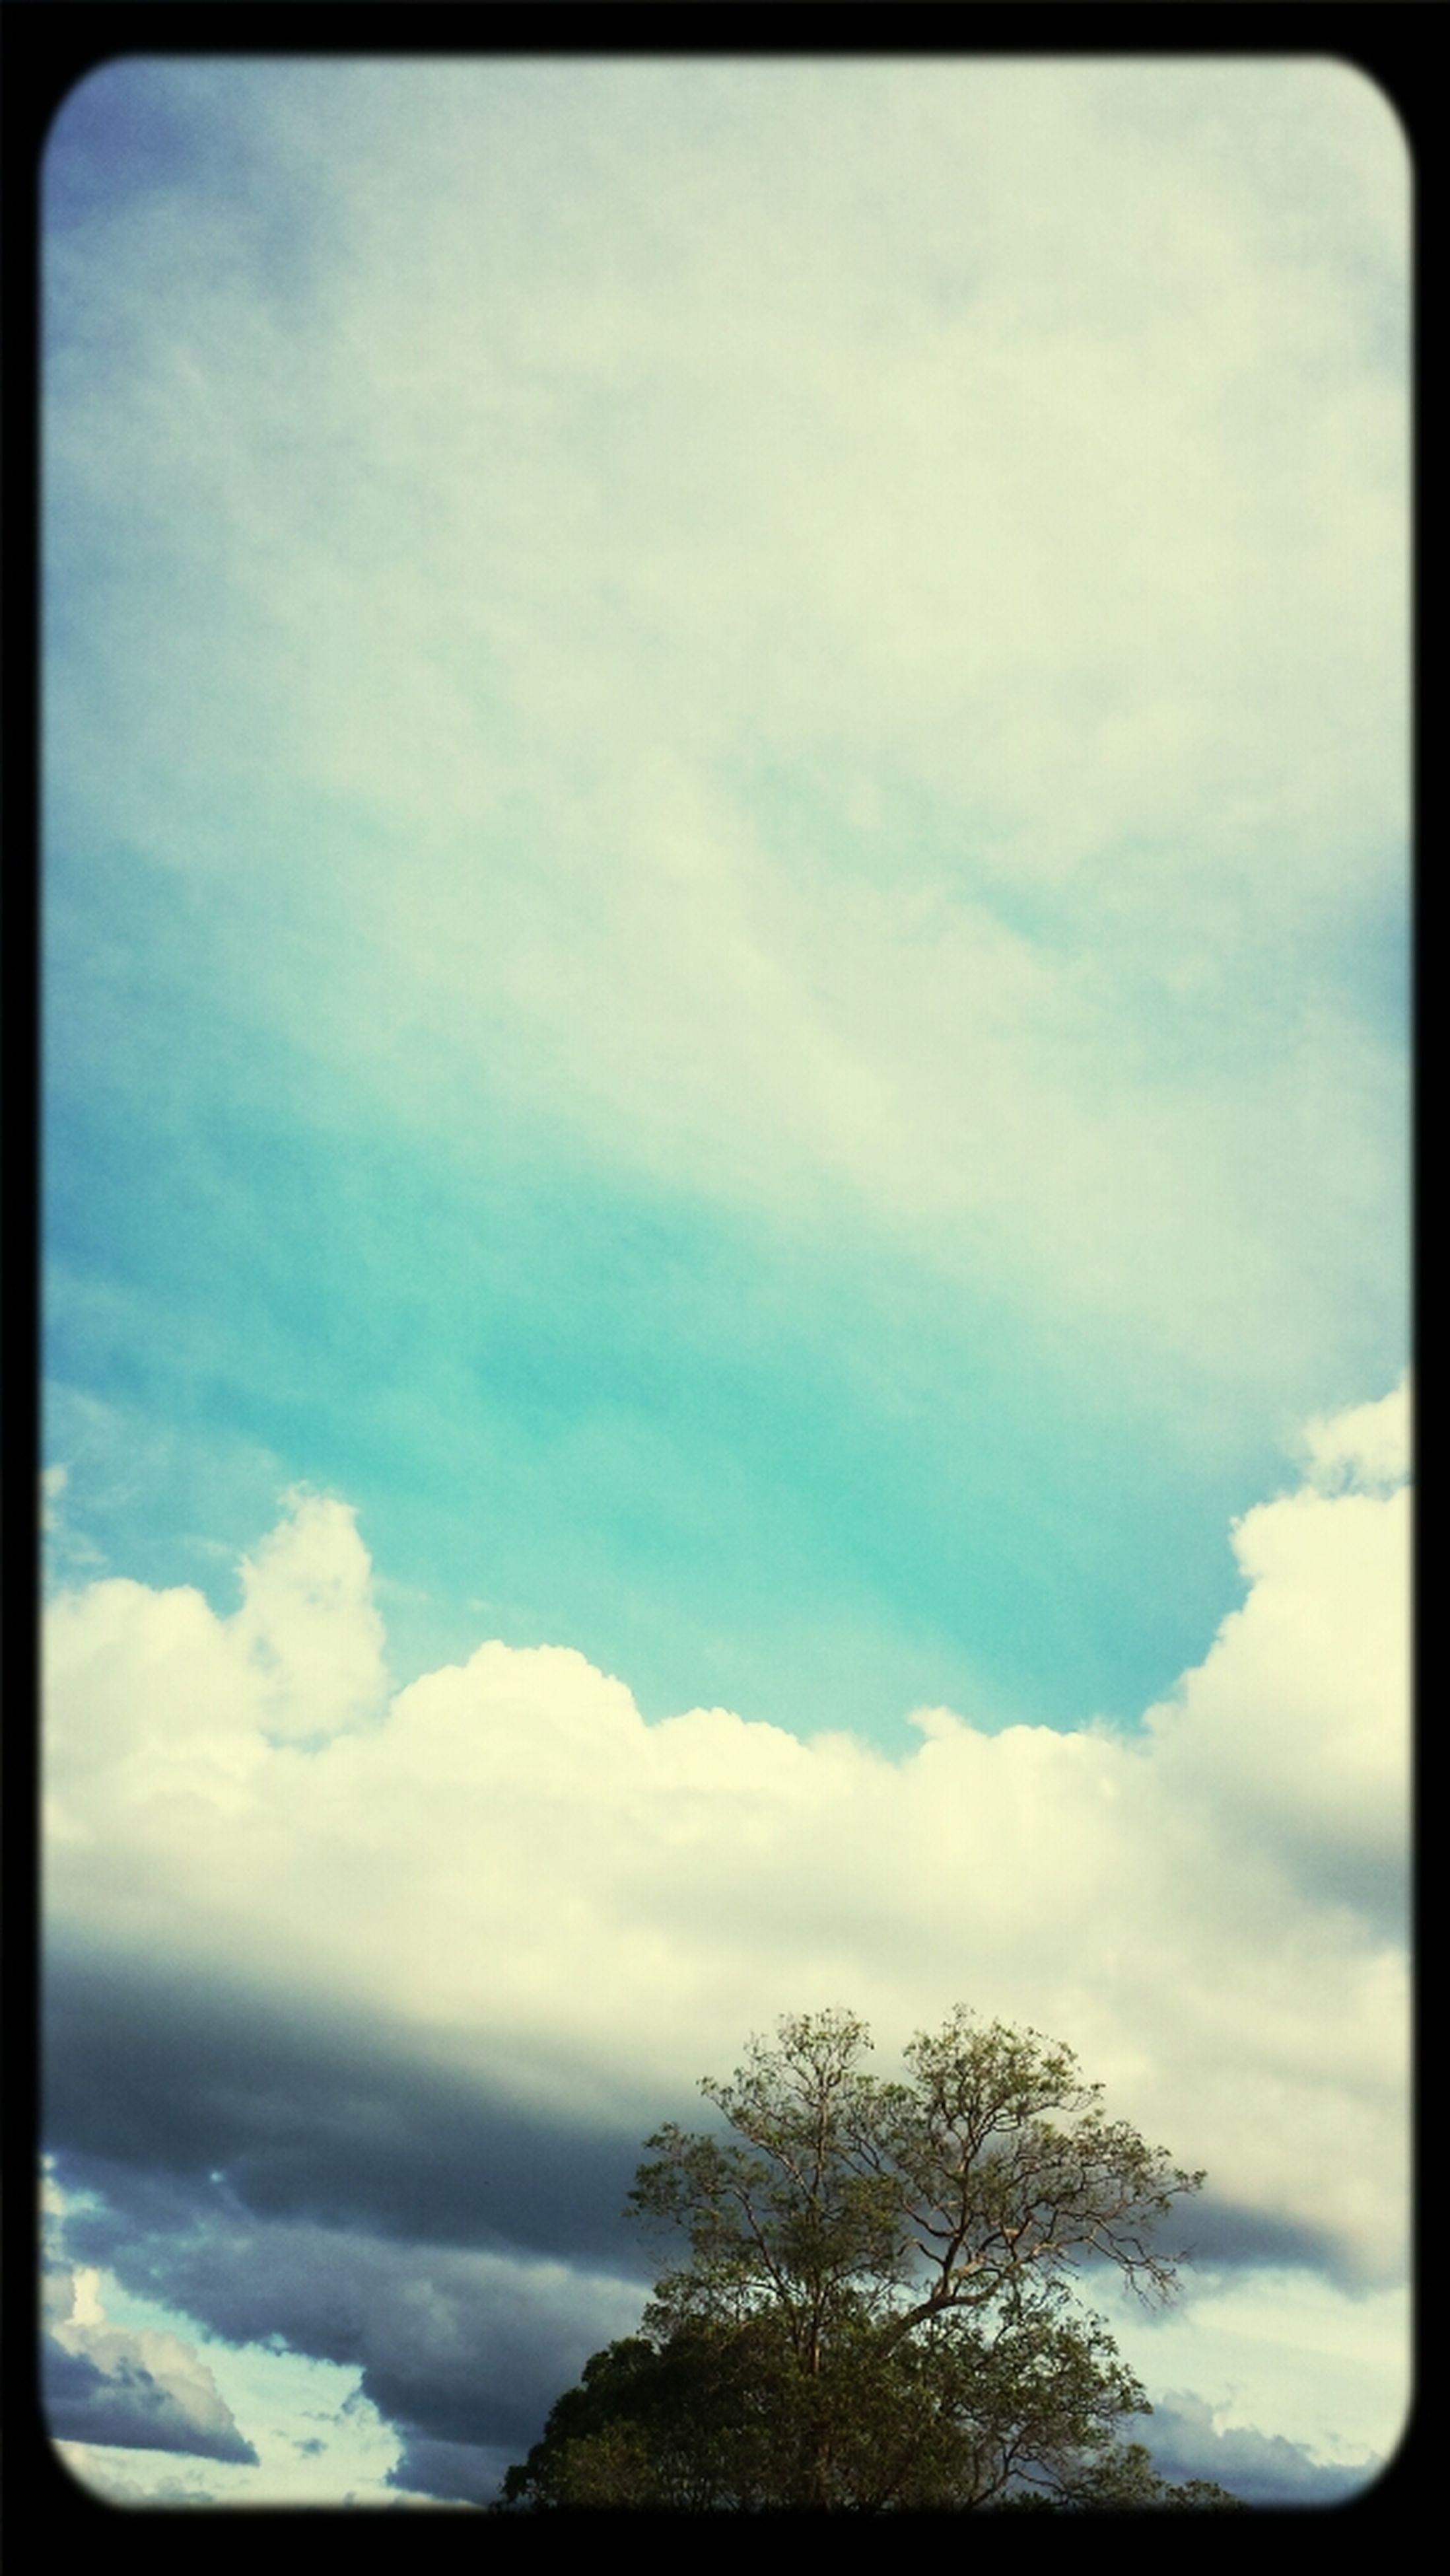 sky, transfer print, low angle view, cloud - sky, tree, beauty in nature, tranquility, scenics, cloudy, tranquil scene, auto post production filter, cloud, nature, blue, silhouette, outdoors, day, idyllic, no people, cloudscape